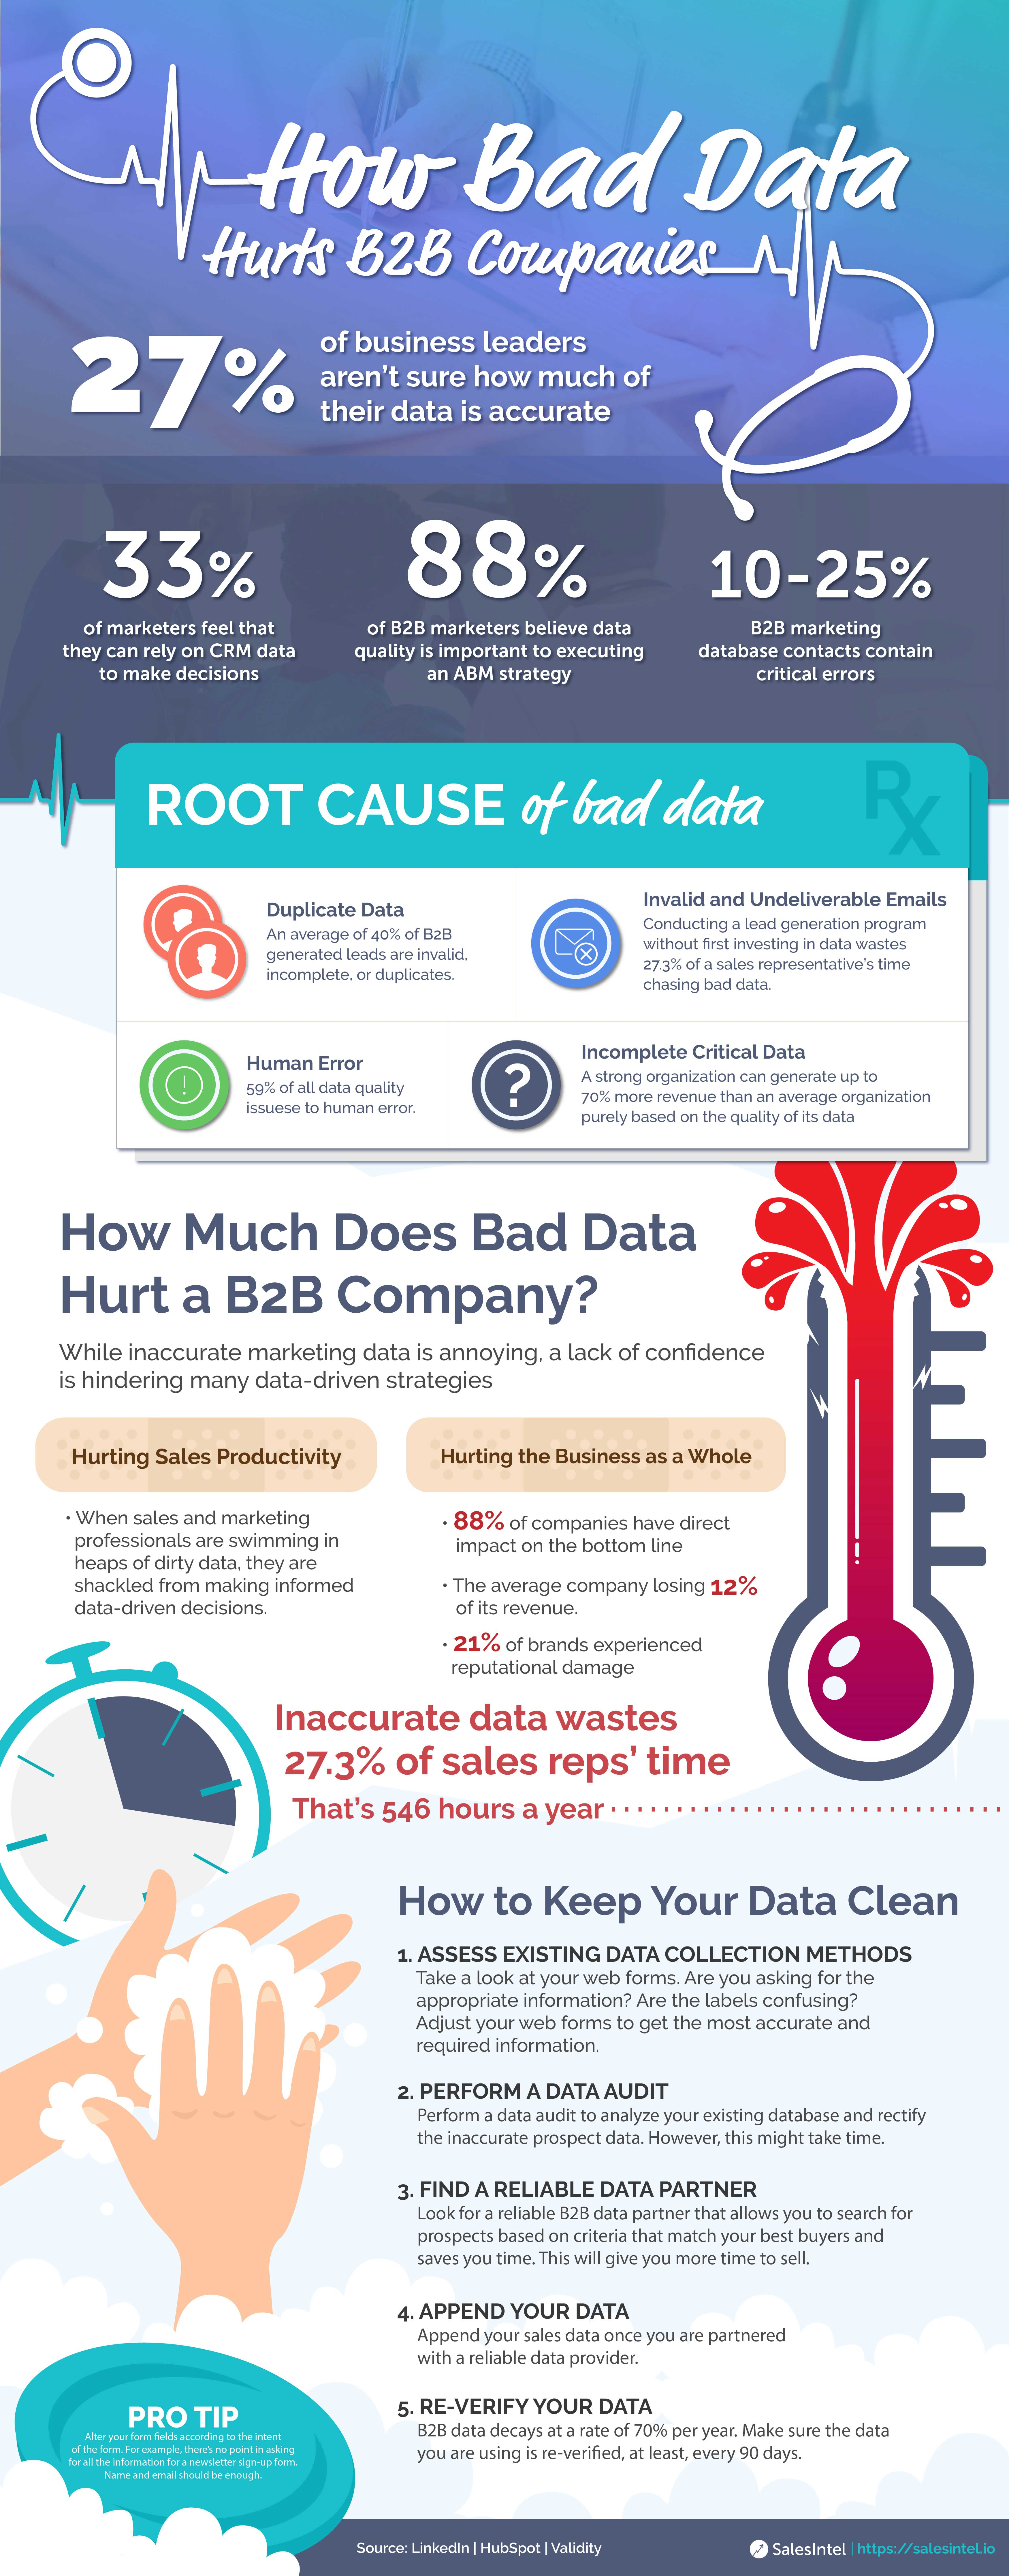 How-Bad-Data-Hurts-B2B-Companies